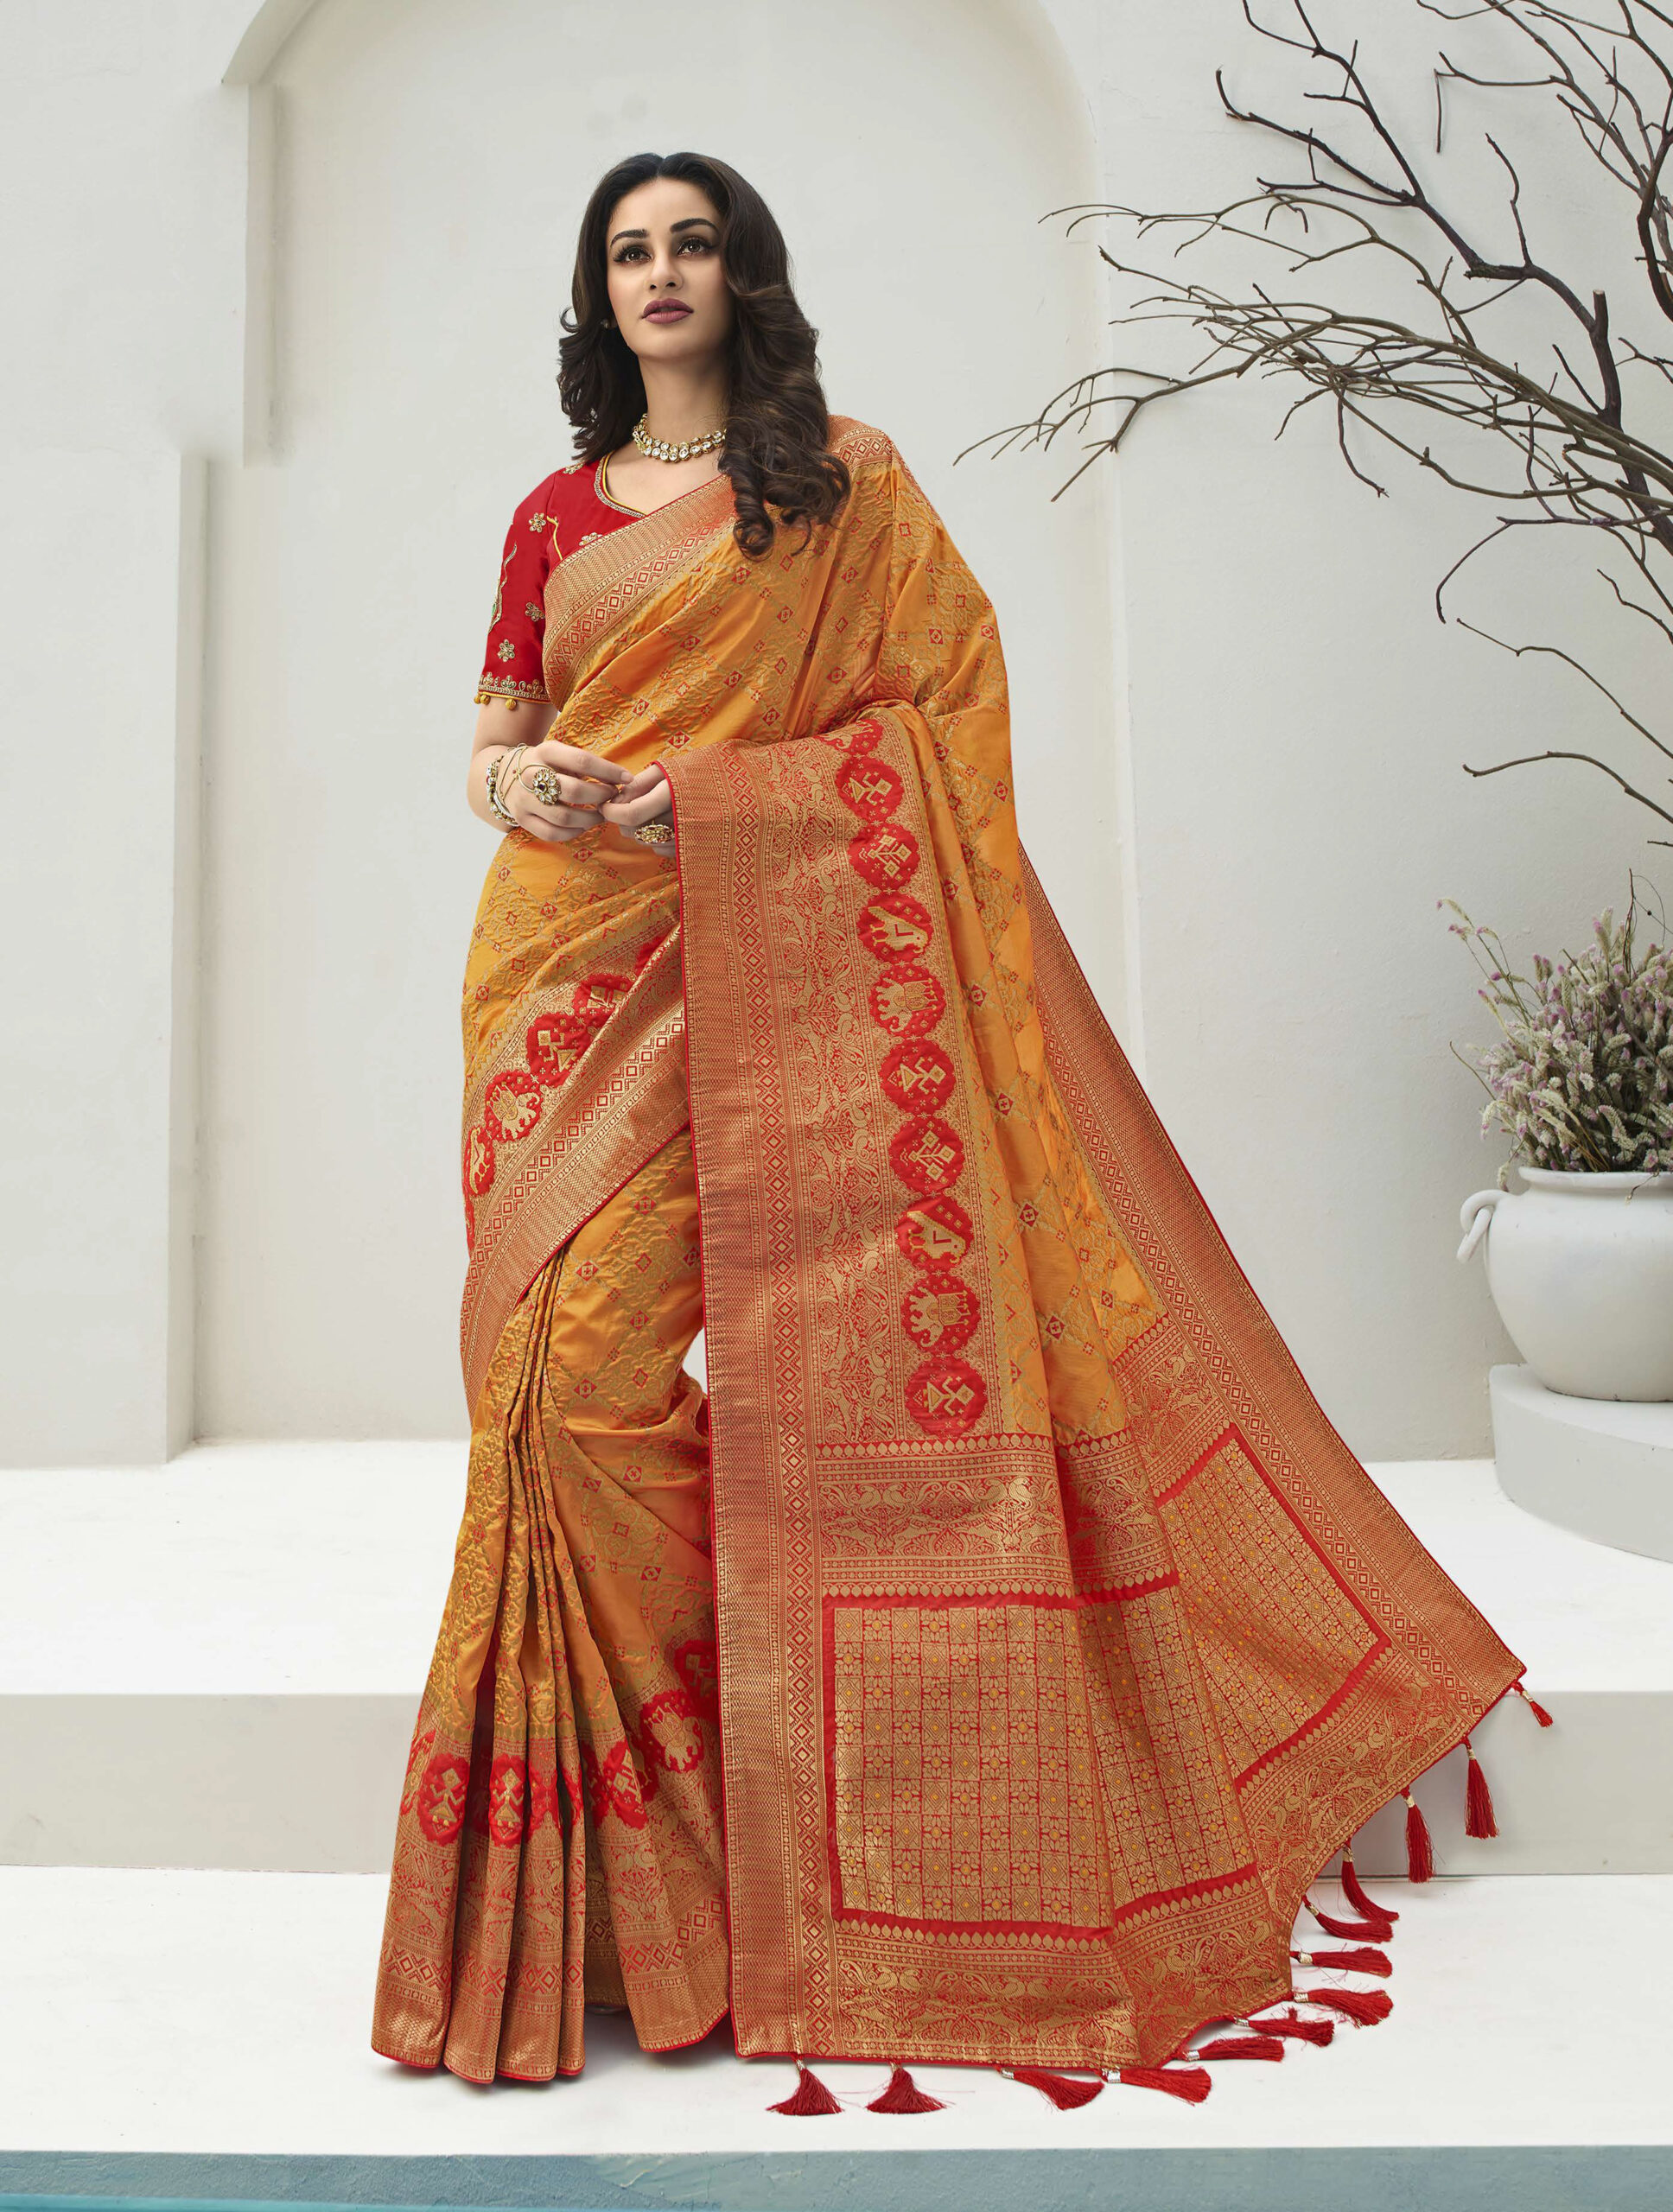 Yellow with Red Combination New Saree Design 2021 for Wedding